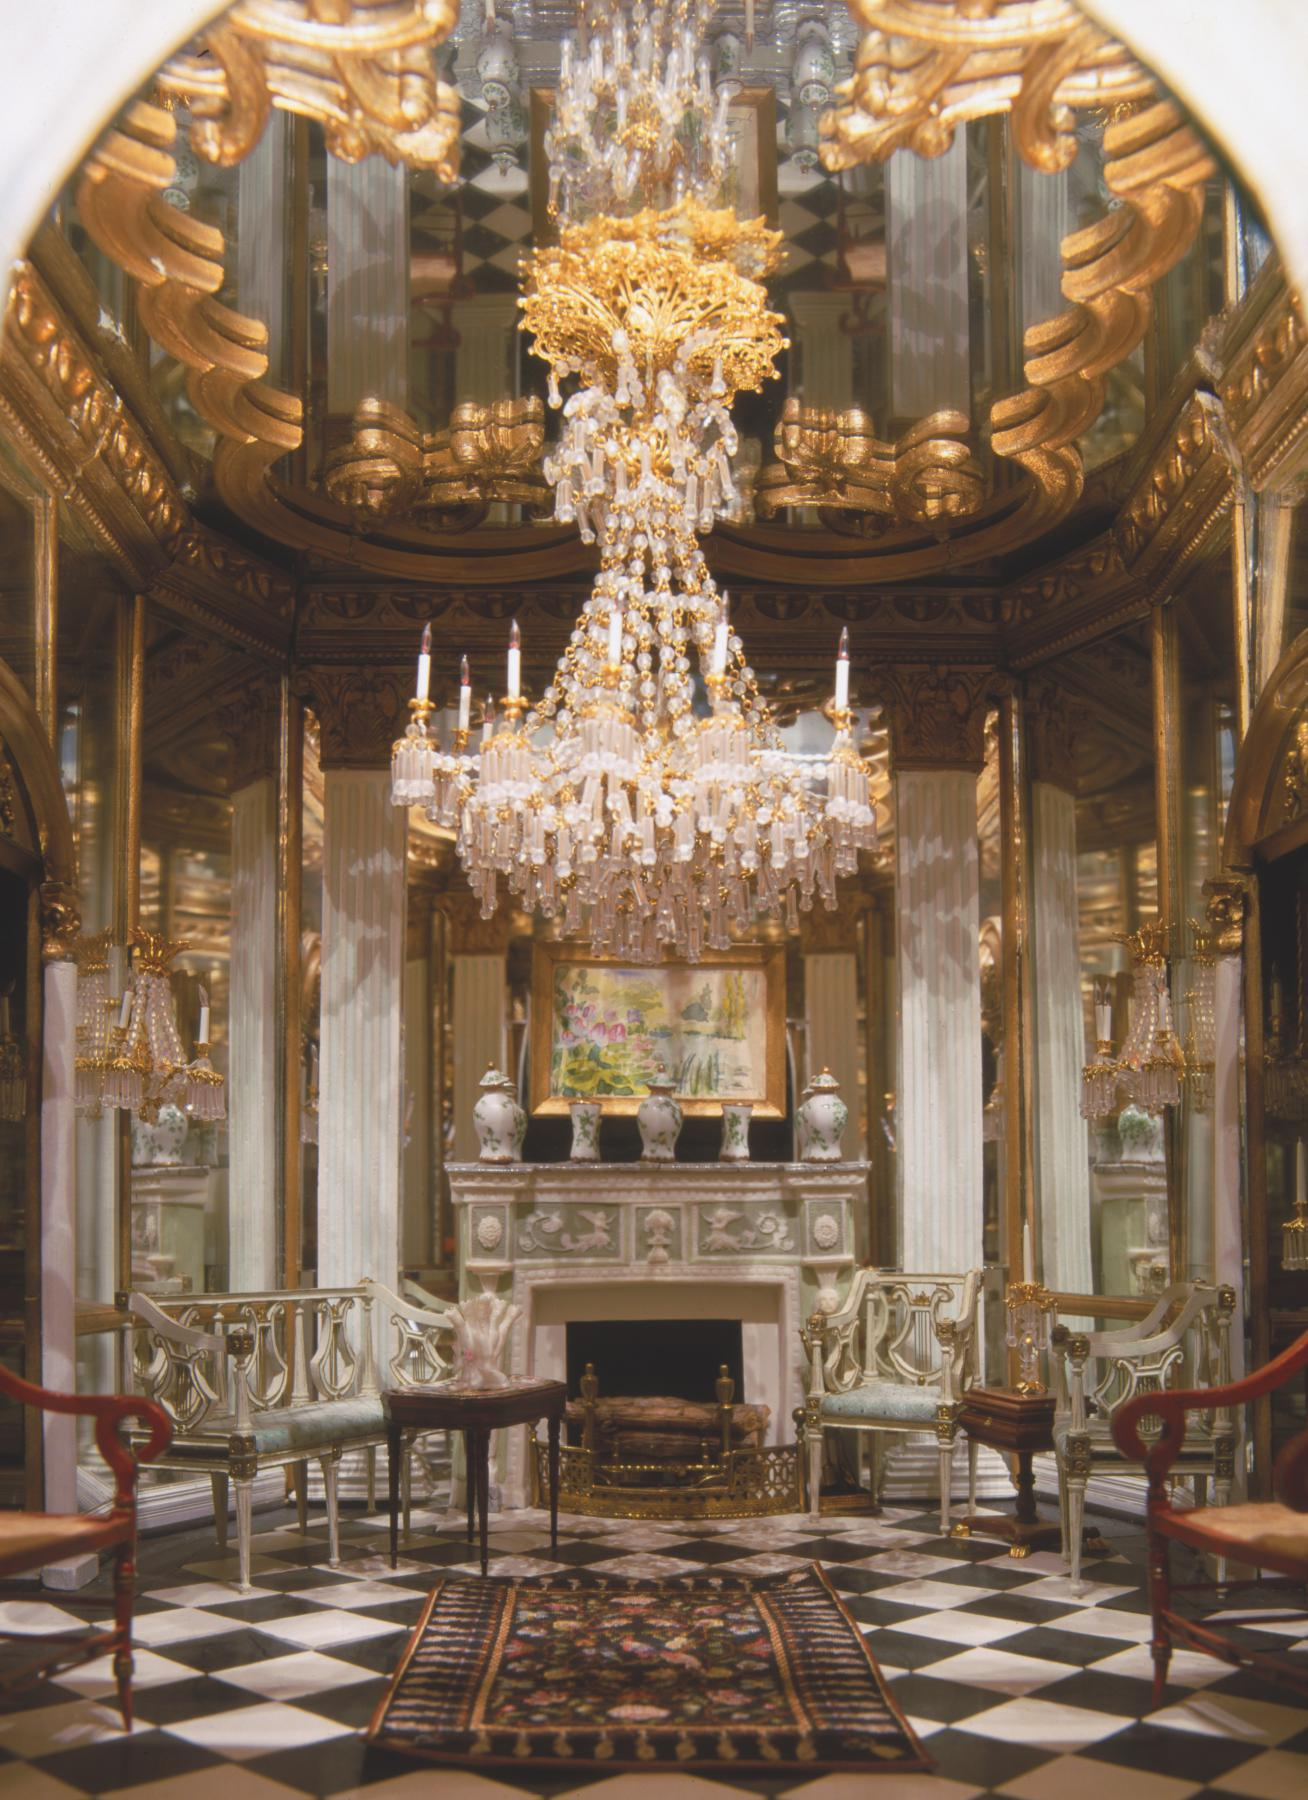 The French Parlor